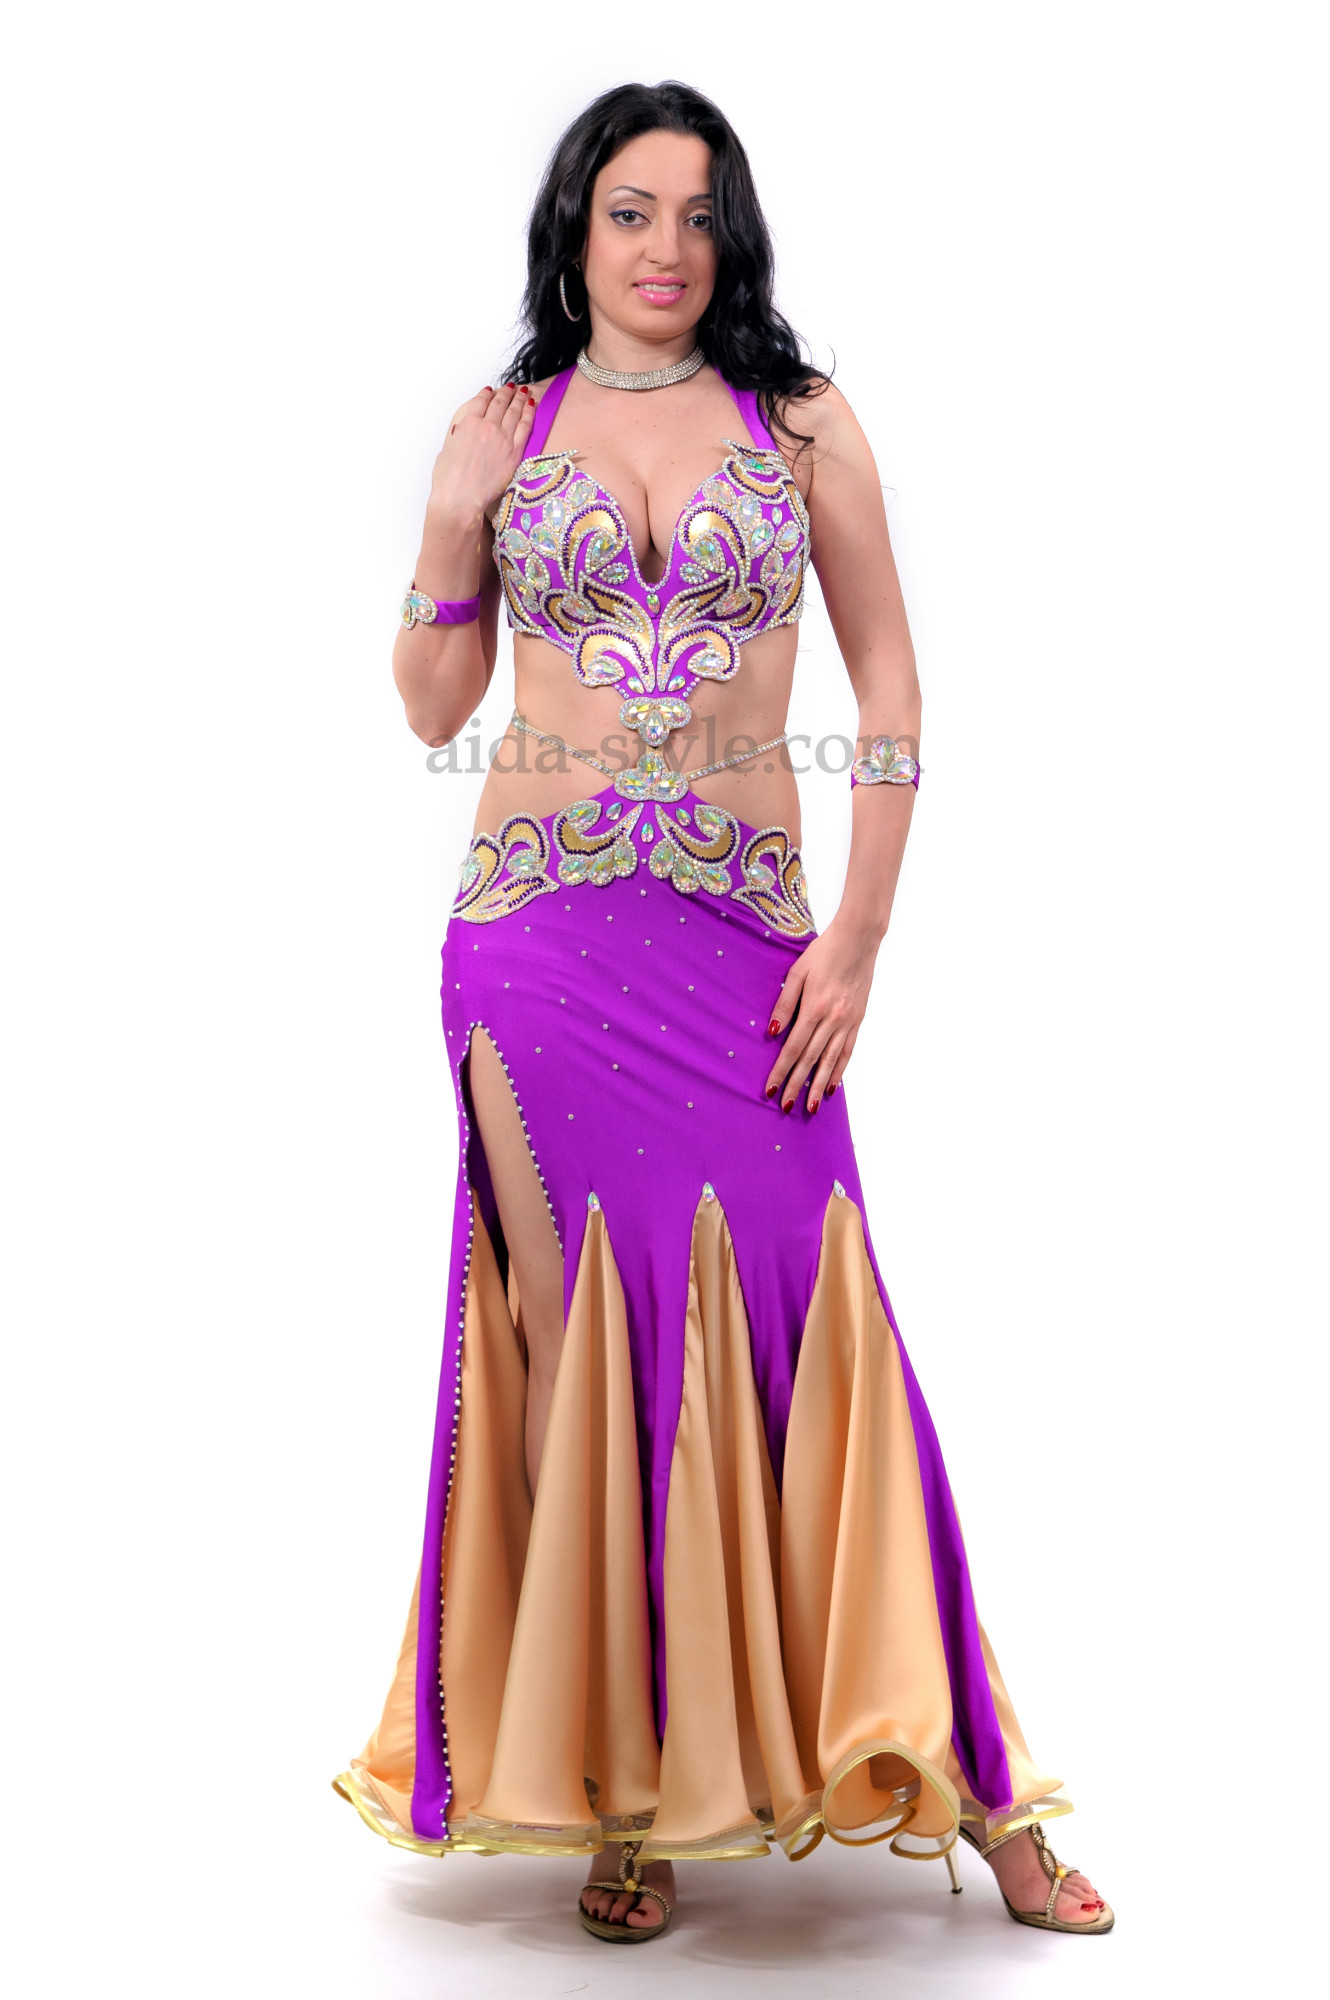 Professional belly dance dress in violet color and with a rich decoration from stones